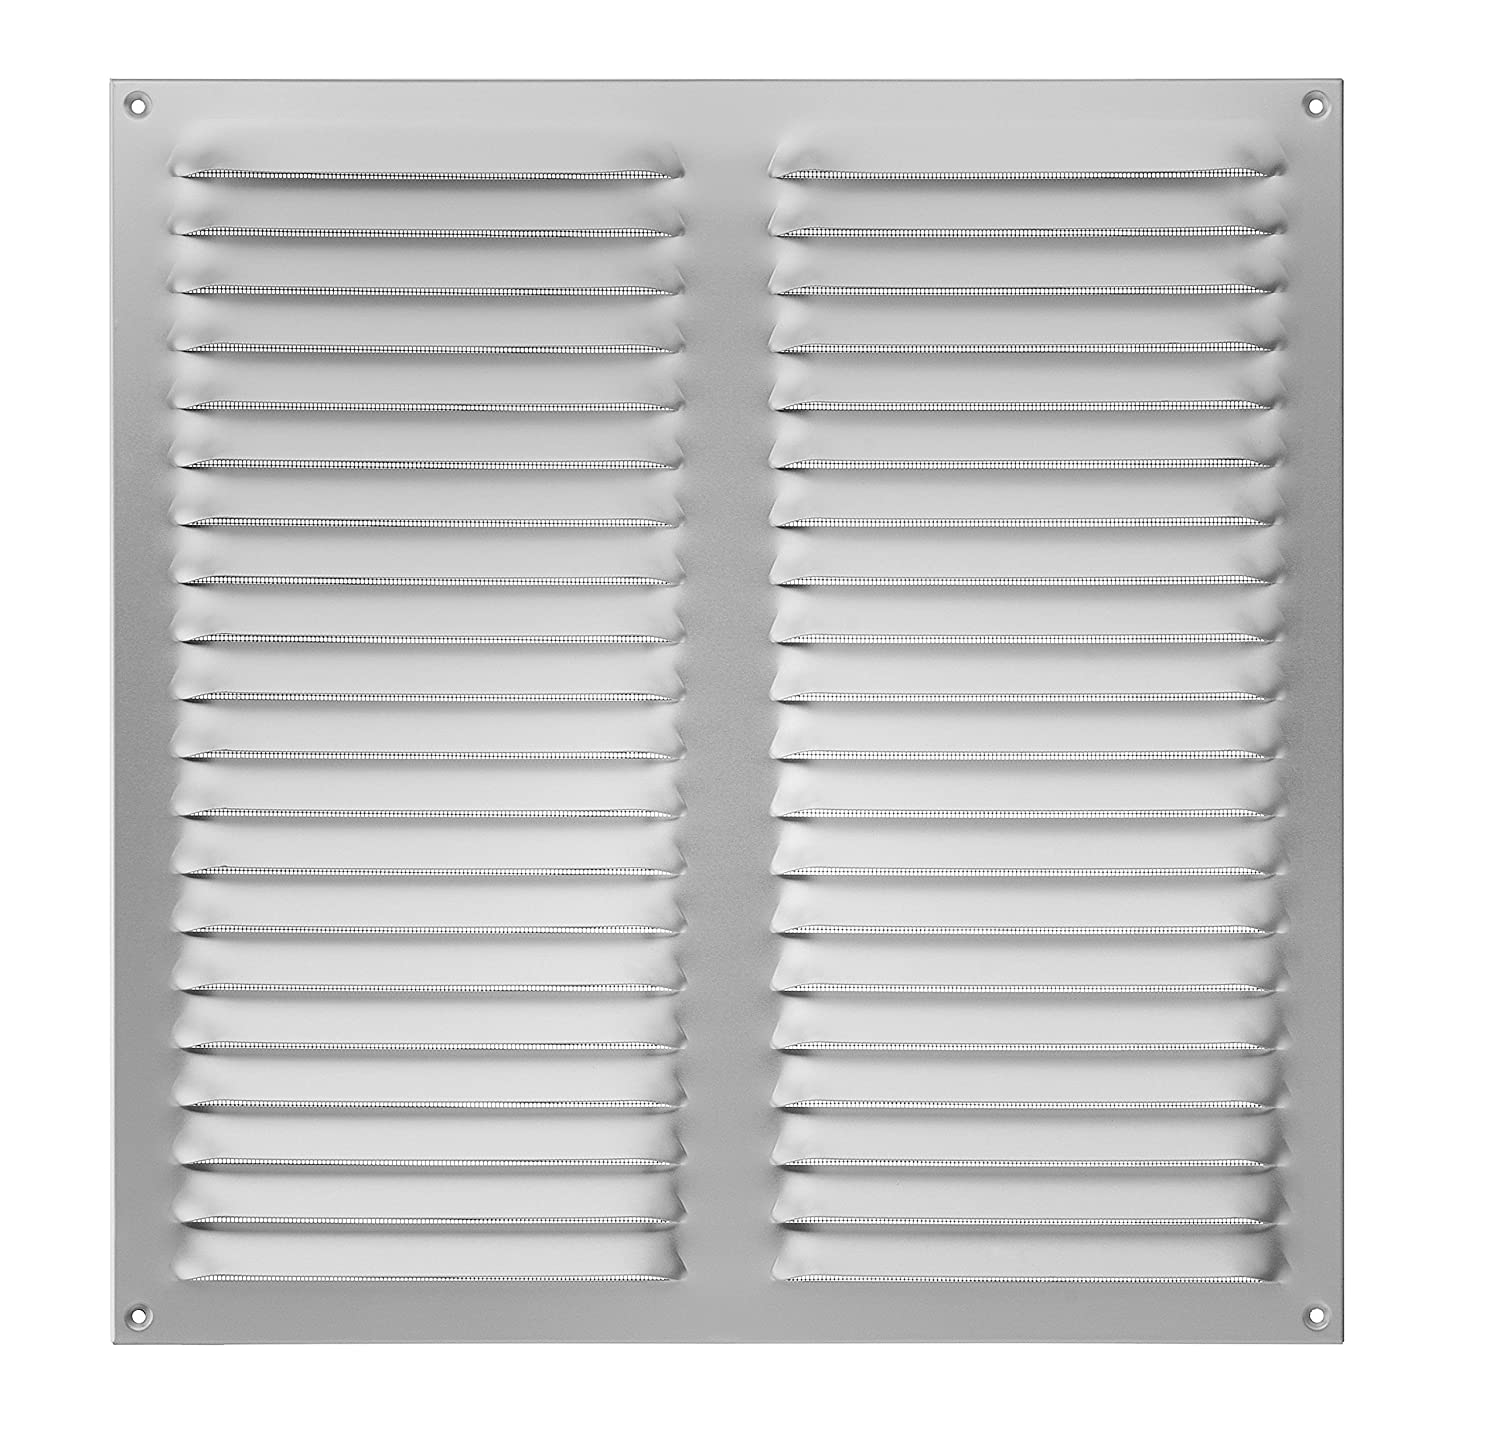 Upmann 54615 Weatherproof Aluminium Grill Anodised with Fly Screen, 300 x 300 mm, 1 Piece, 54604